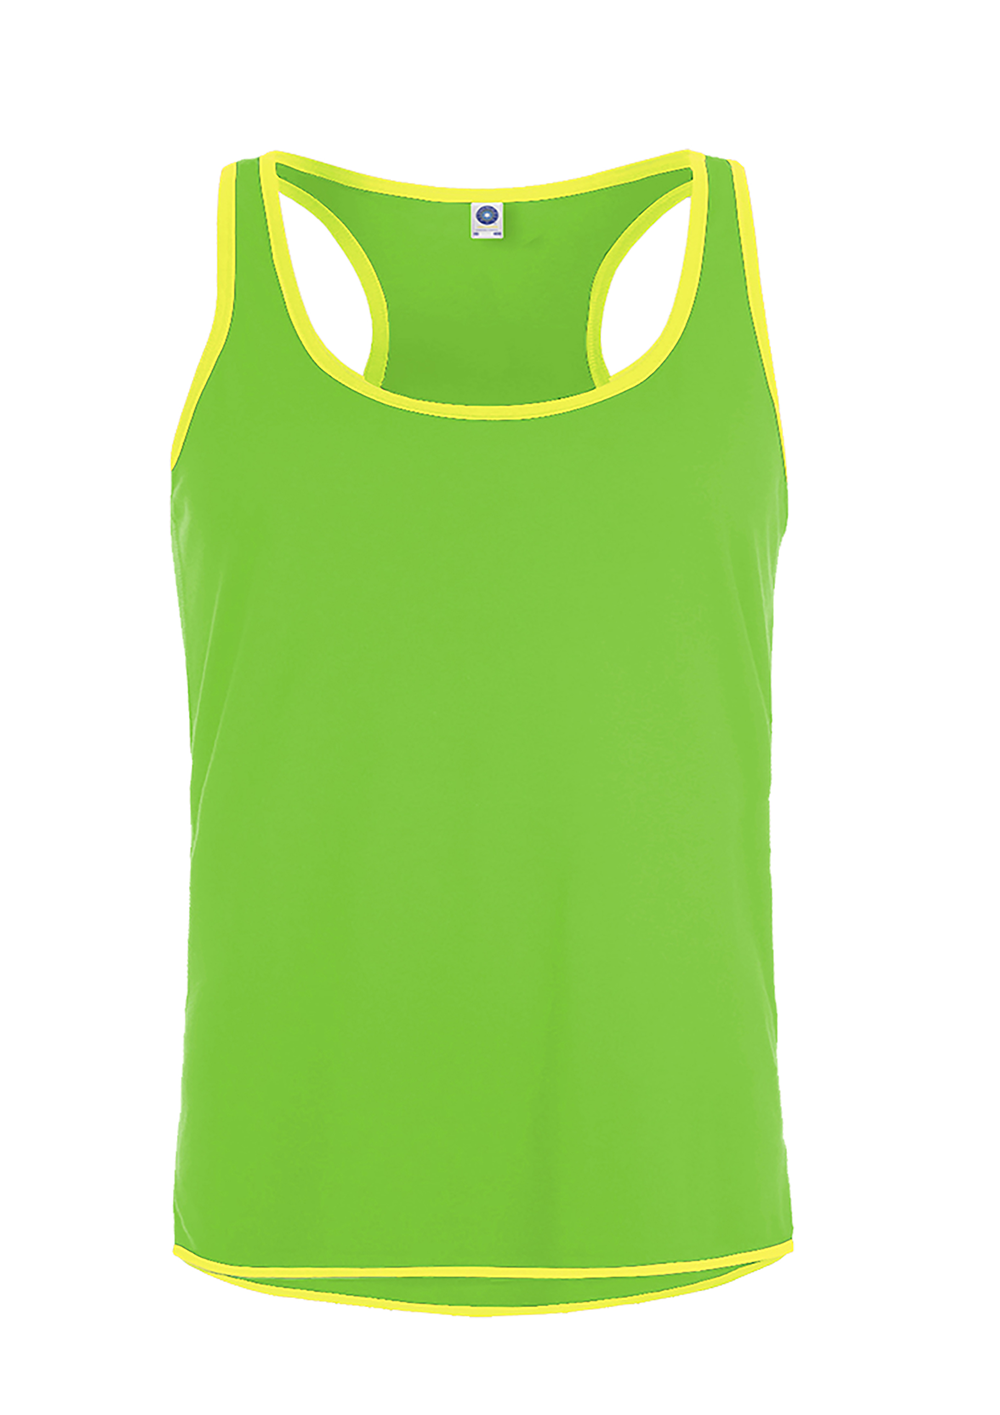 SW305-77-64-FLGreen-FLYellow.png